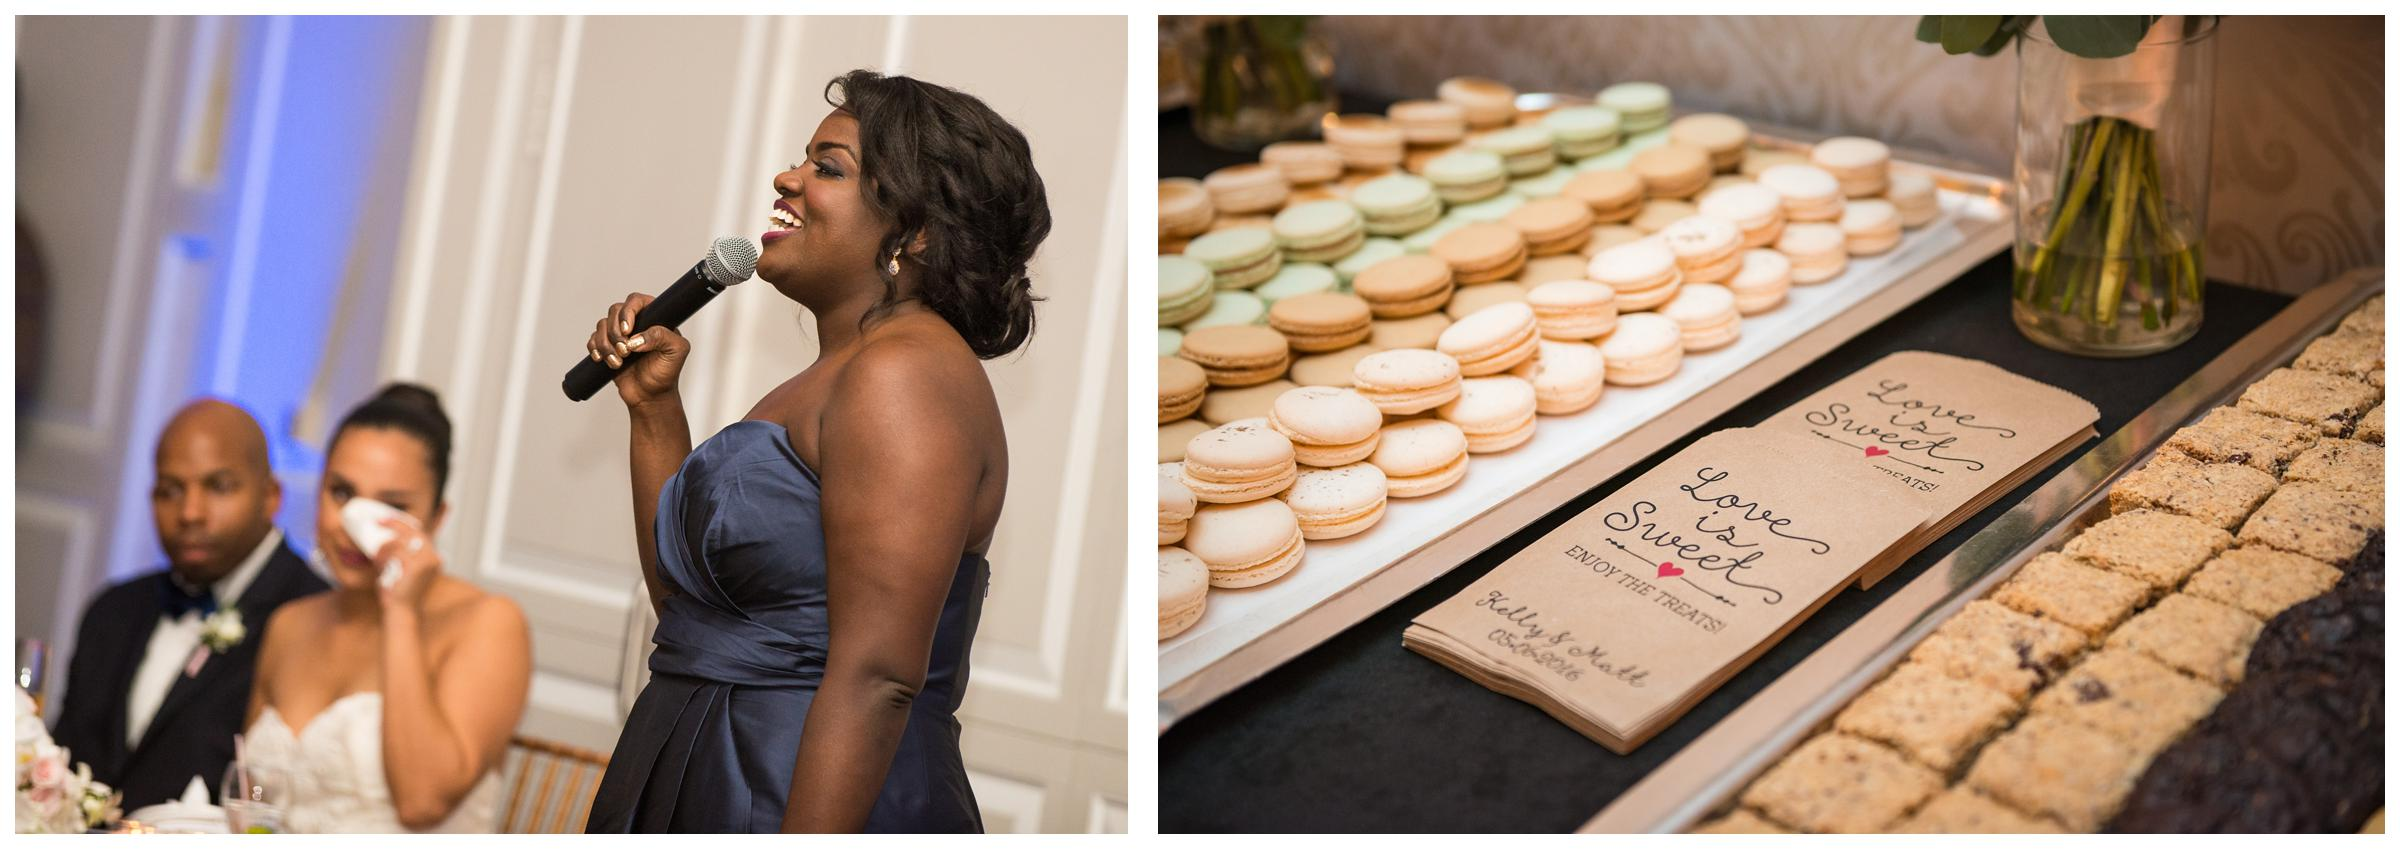 bridesmaid makes emotional toast and detail of macaroons at wedding reception